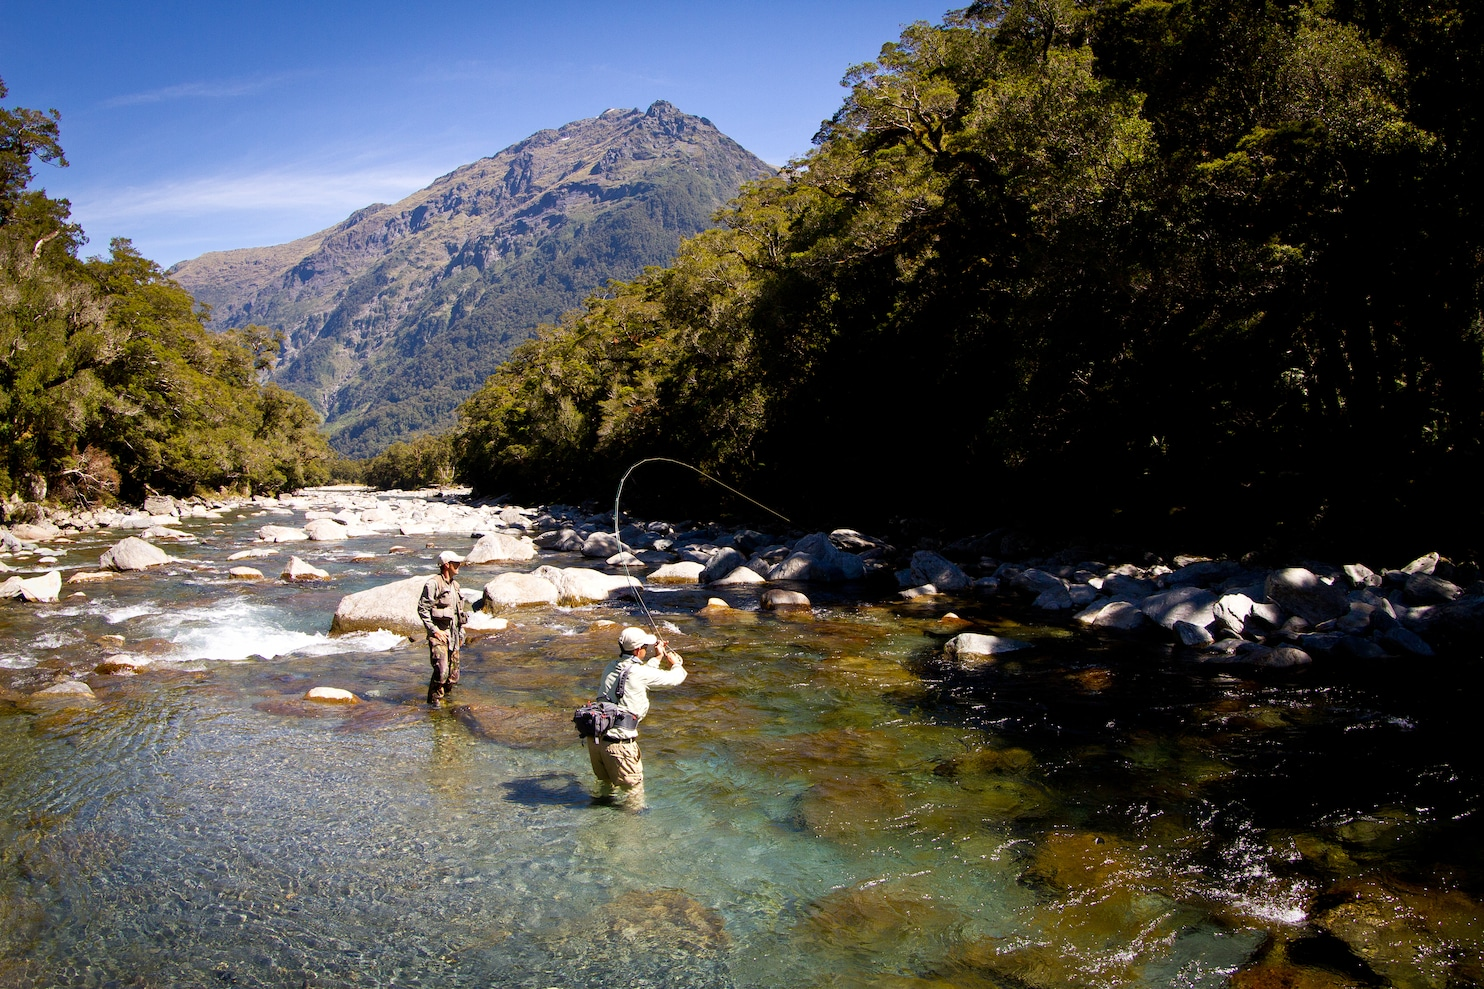 Fall Mountain Scenes Wallpaper Fly Fishing In New Zealand Emphasis On The Fly The